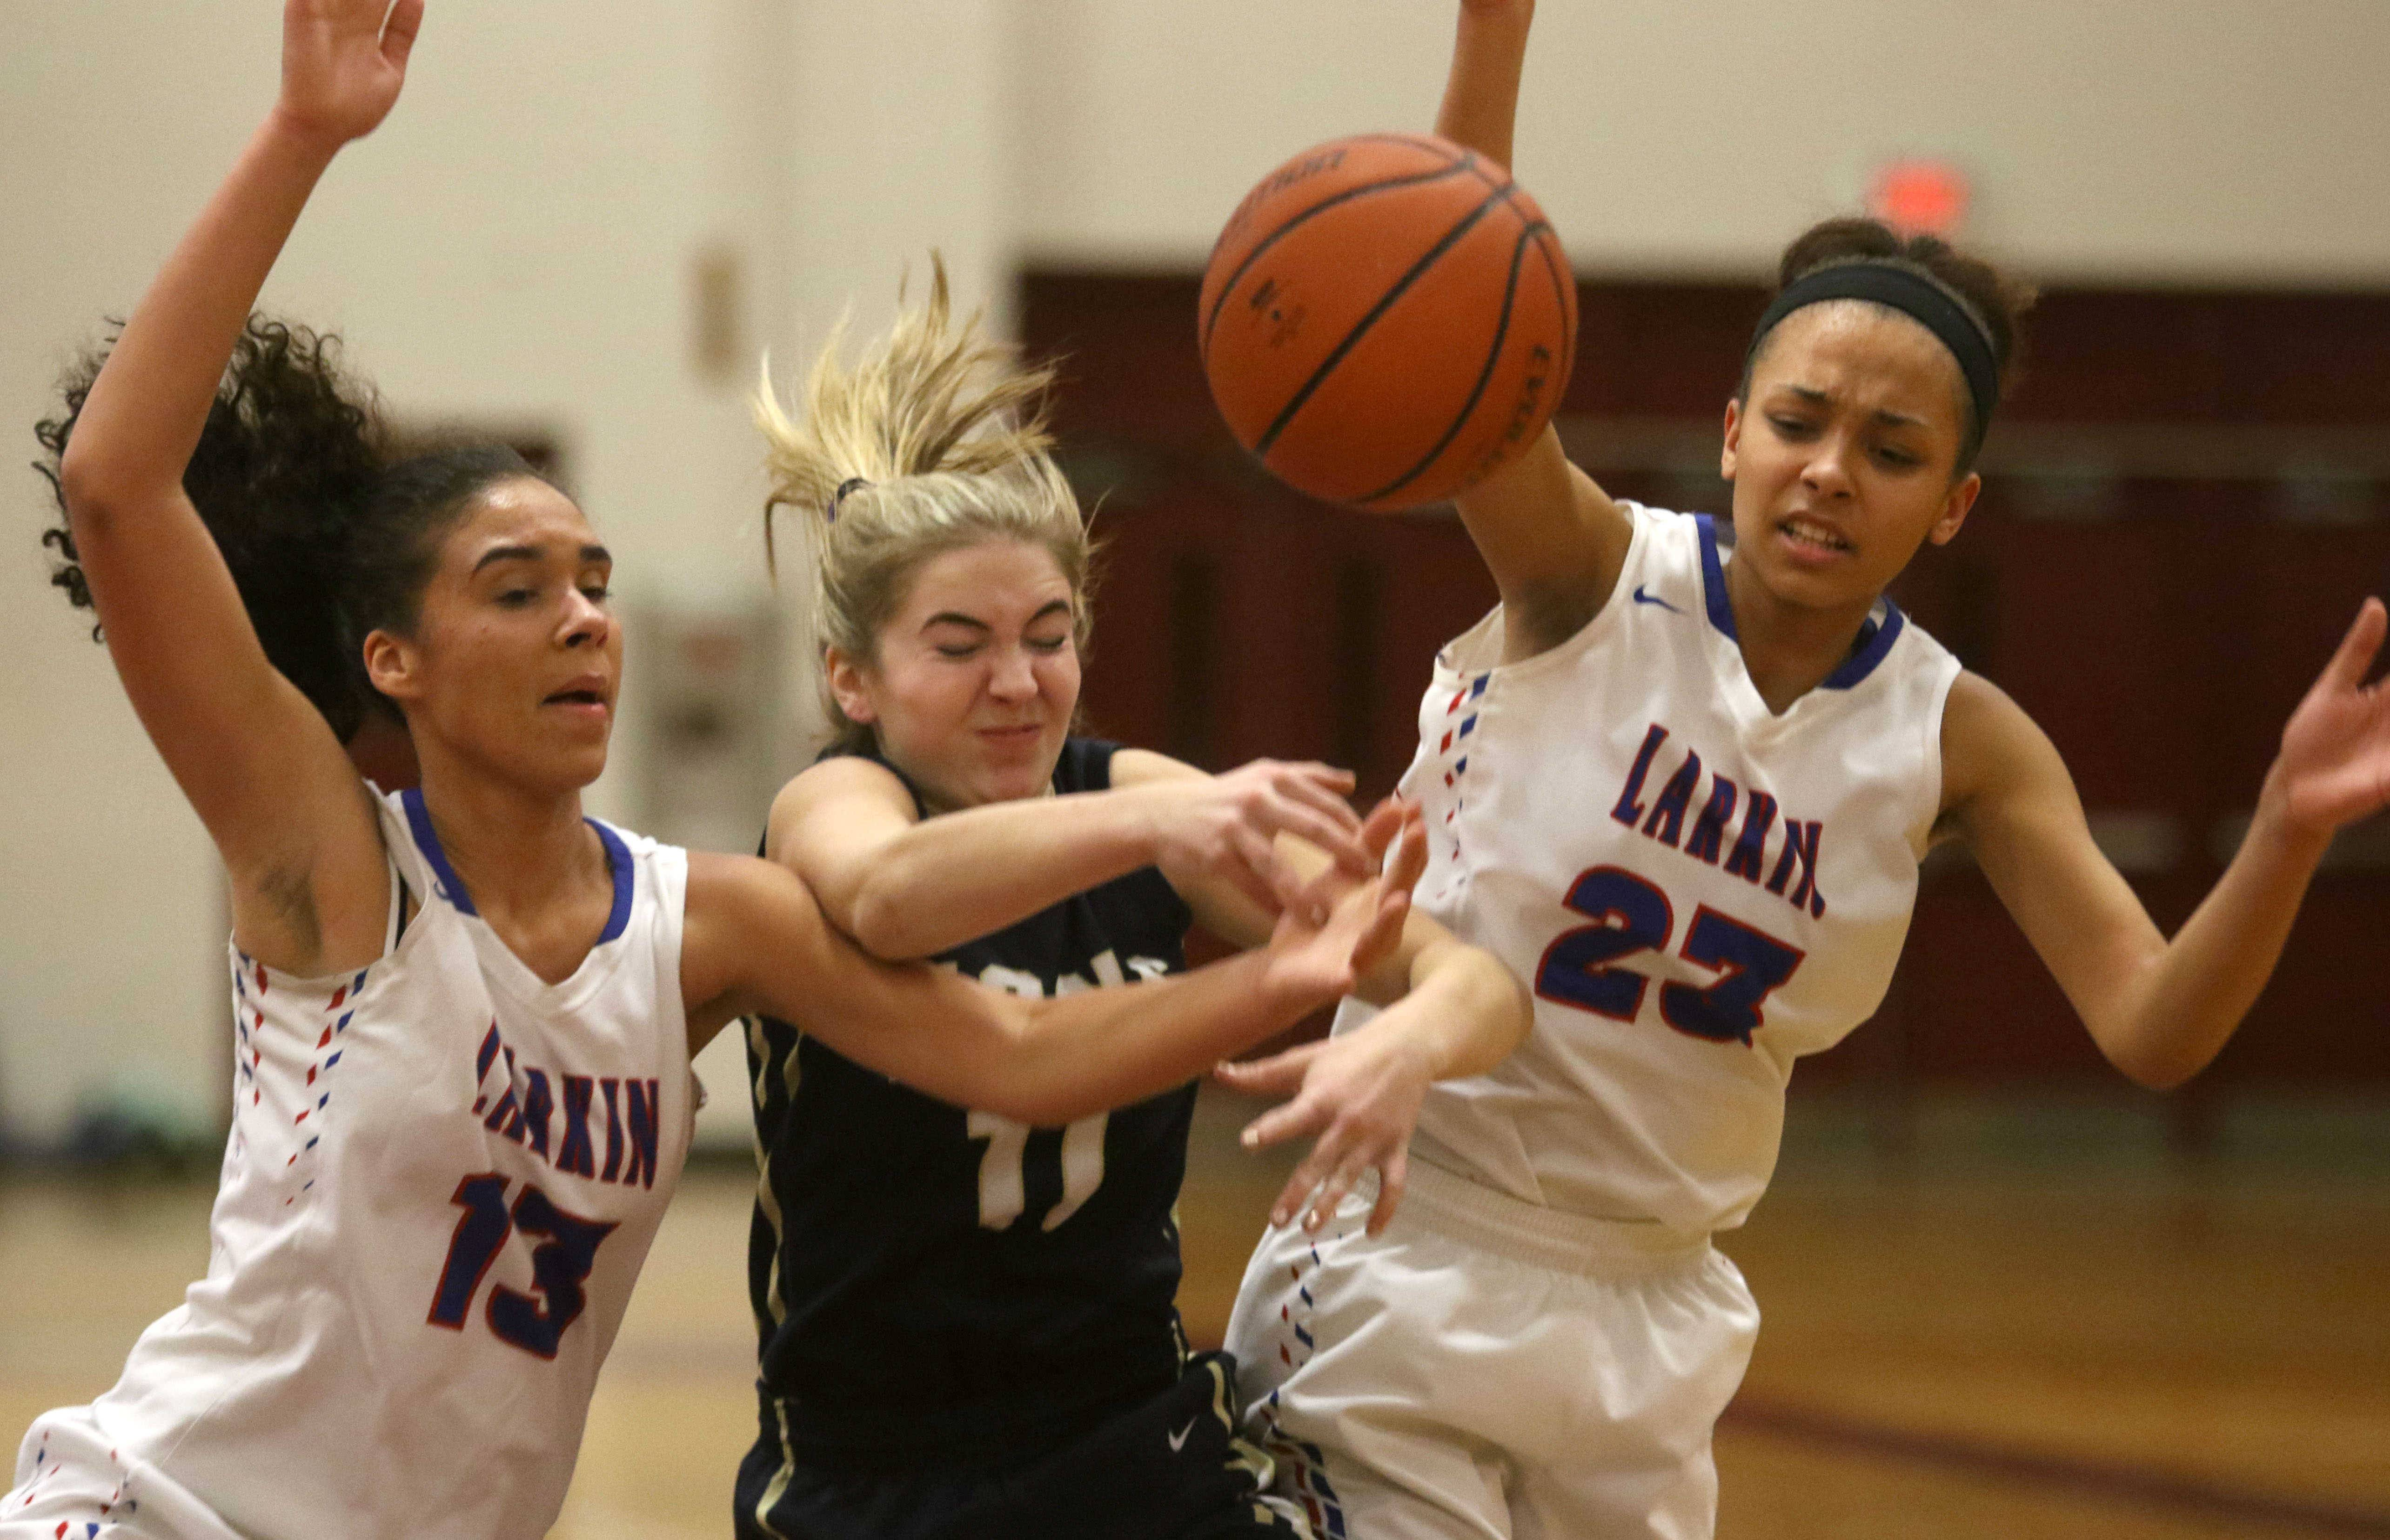 Harvest Christian's Gracie Ozburn, center, gets between Larkin's Brianna Young, left, and Aaliyah Dixon, right, during a varsity girls basketball game as part of the 2017 Elgin City Classic tournament at Chesbrough Field House Wednesday night.